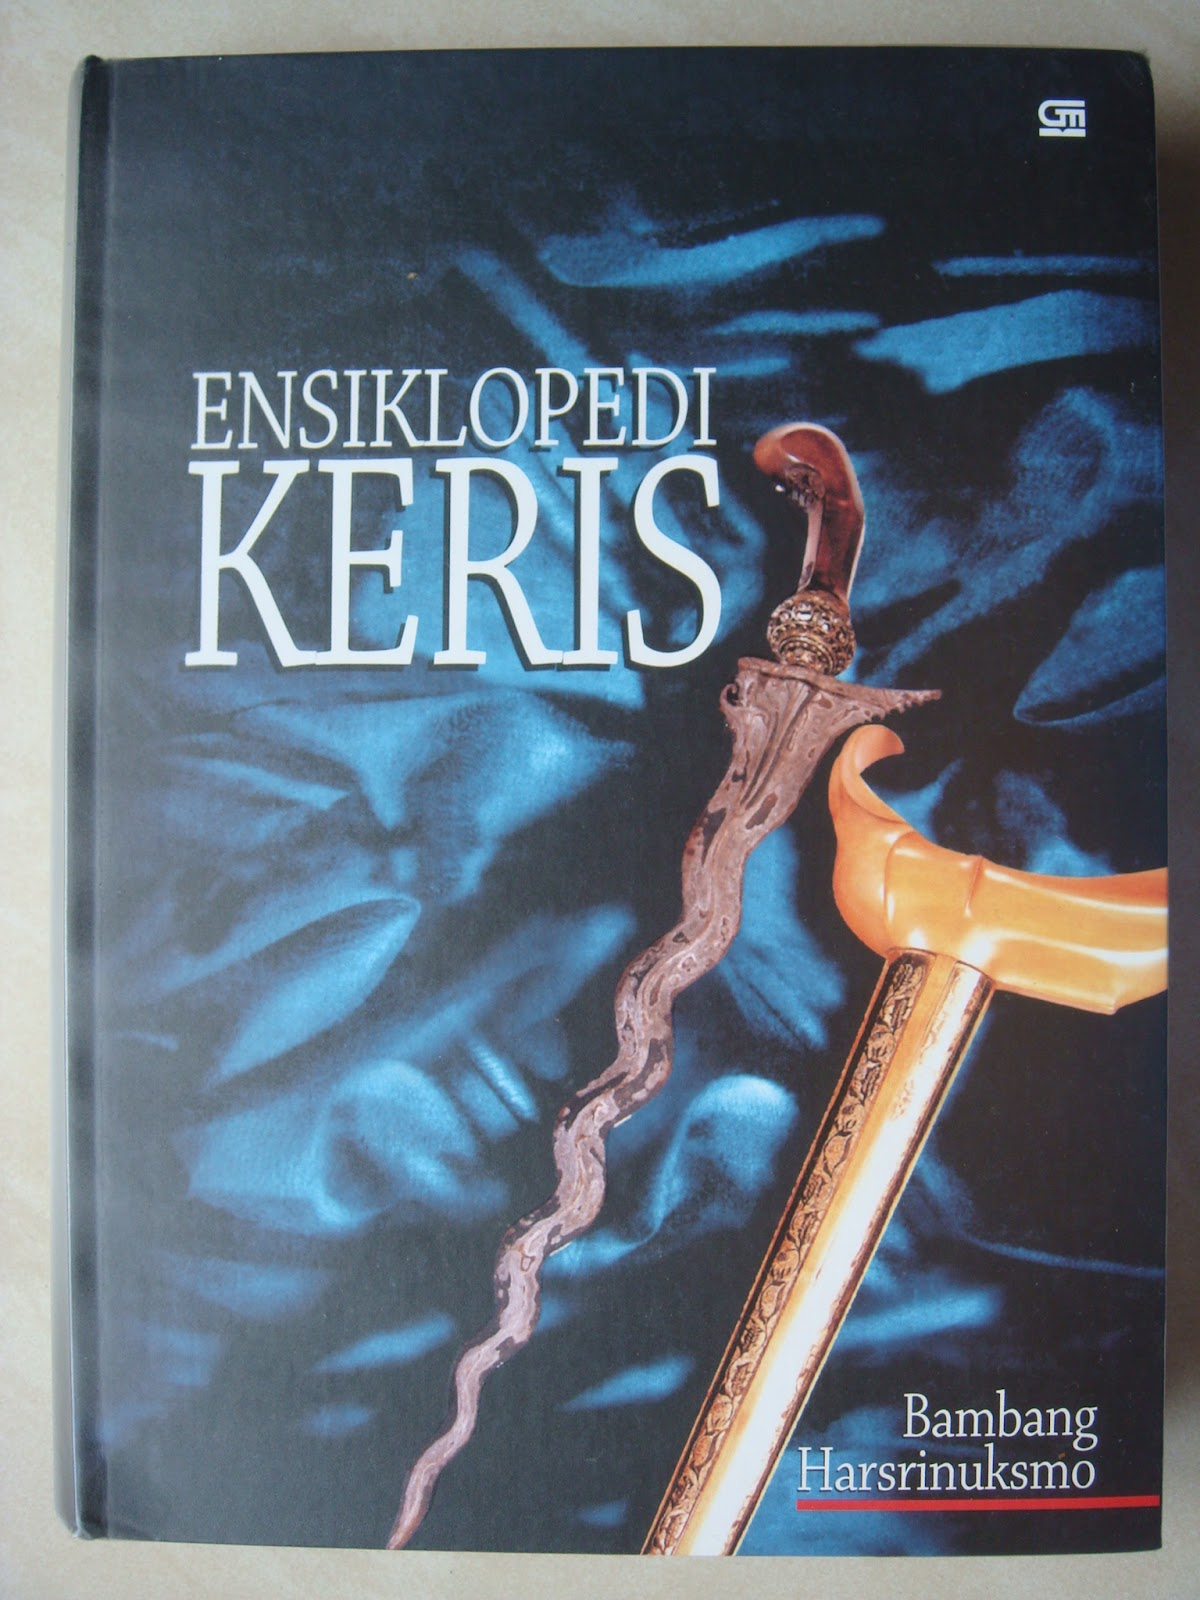 FREE ENSIKLOPEDIA KERIS PDF FILE EPUB